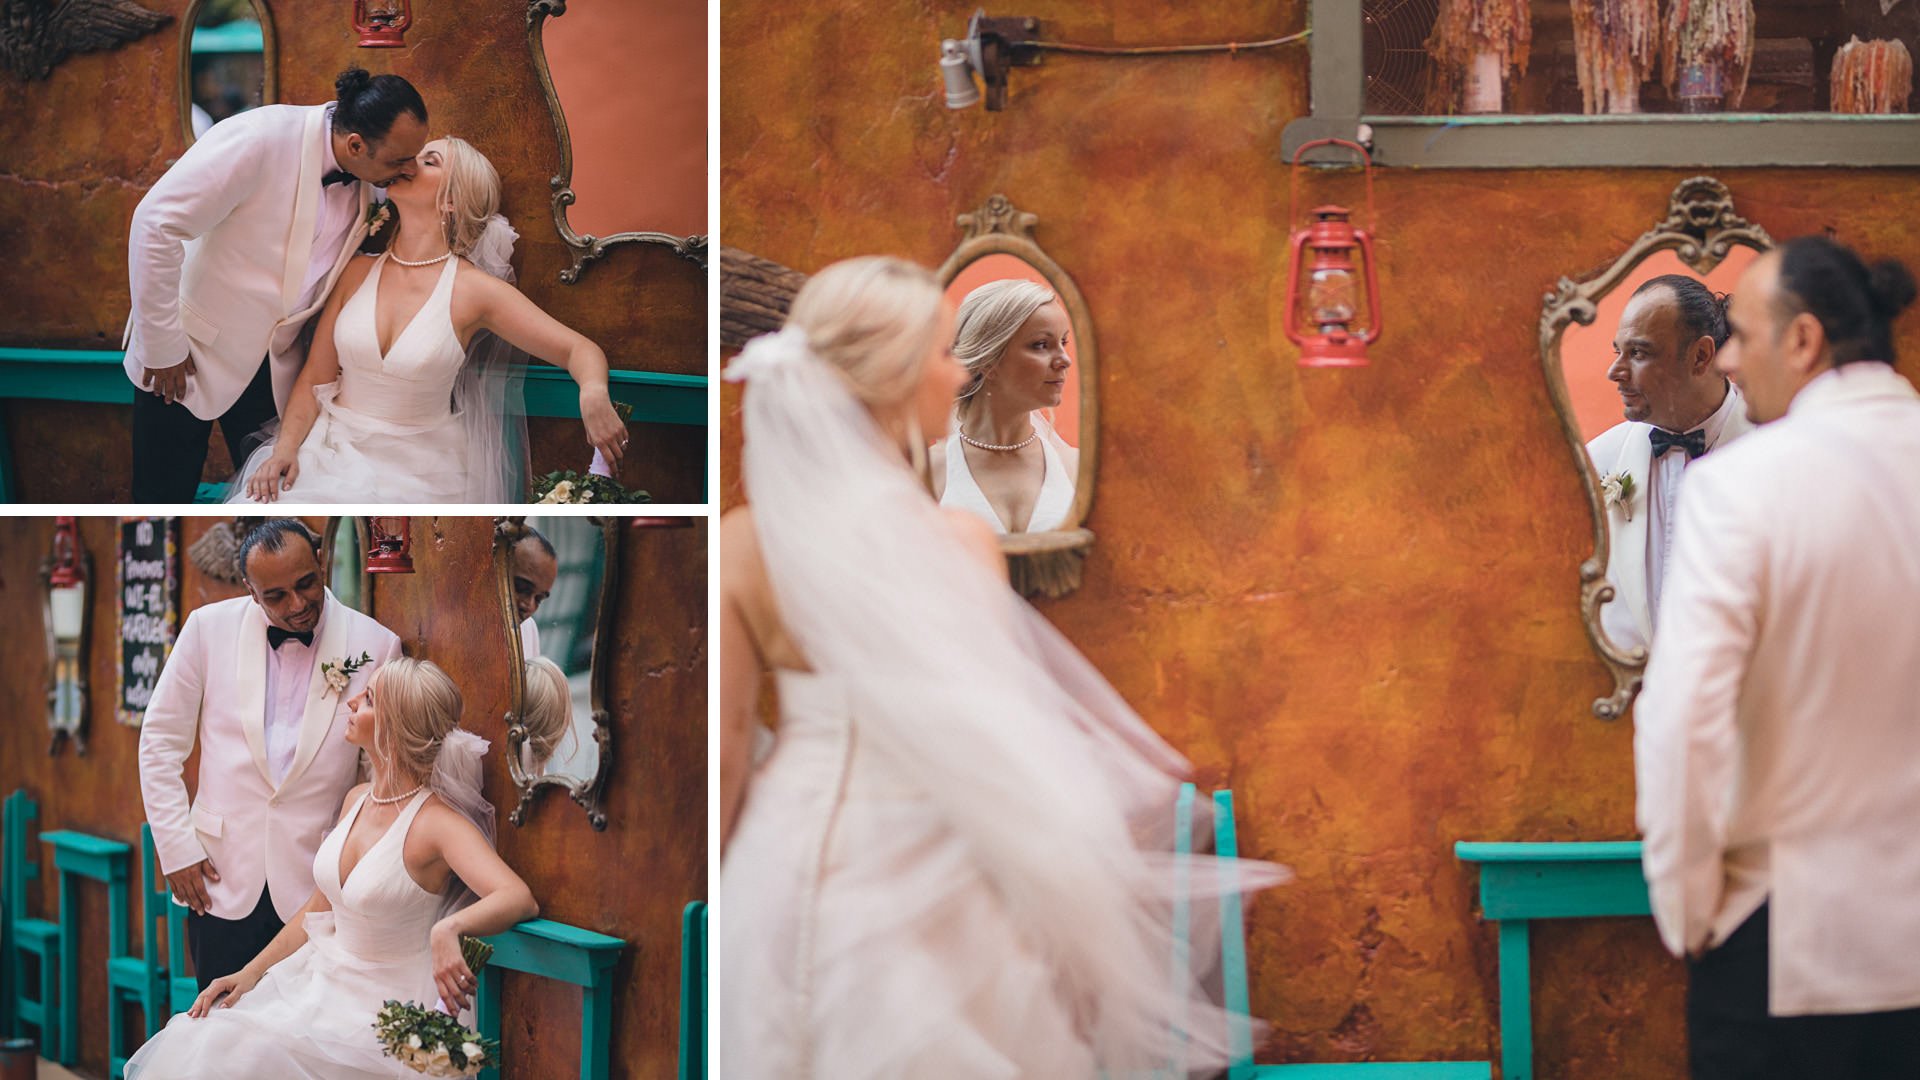 Book Your Wedding Photographer In Cartagena Colombia Today!